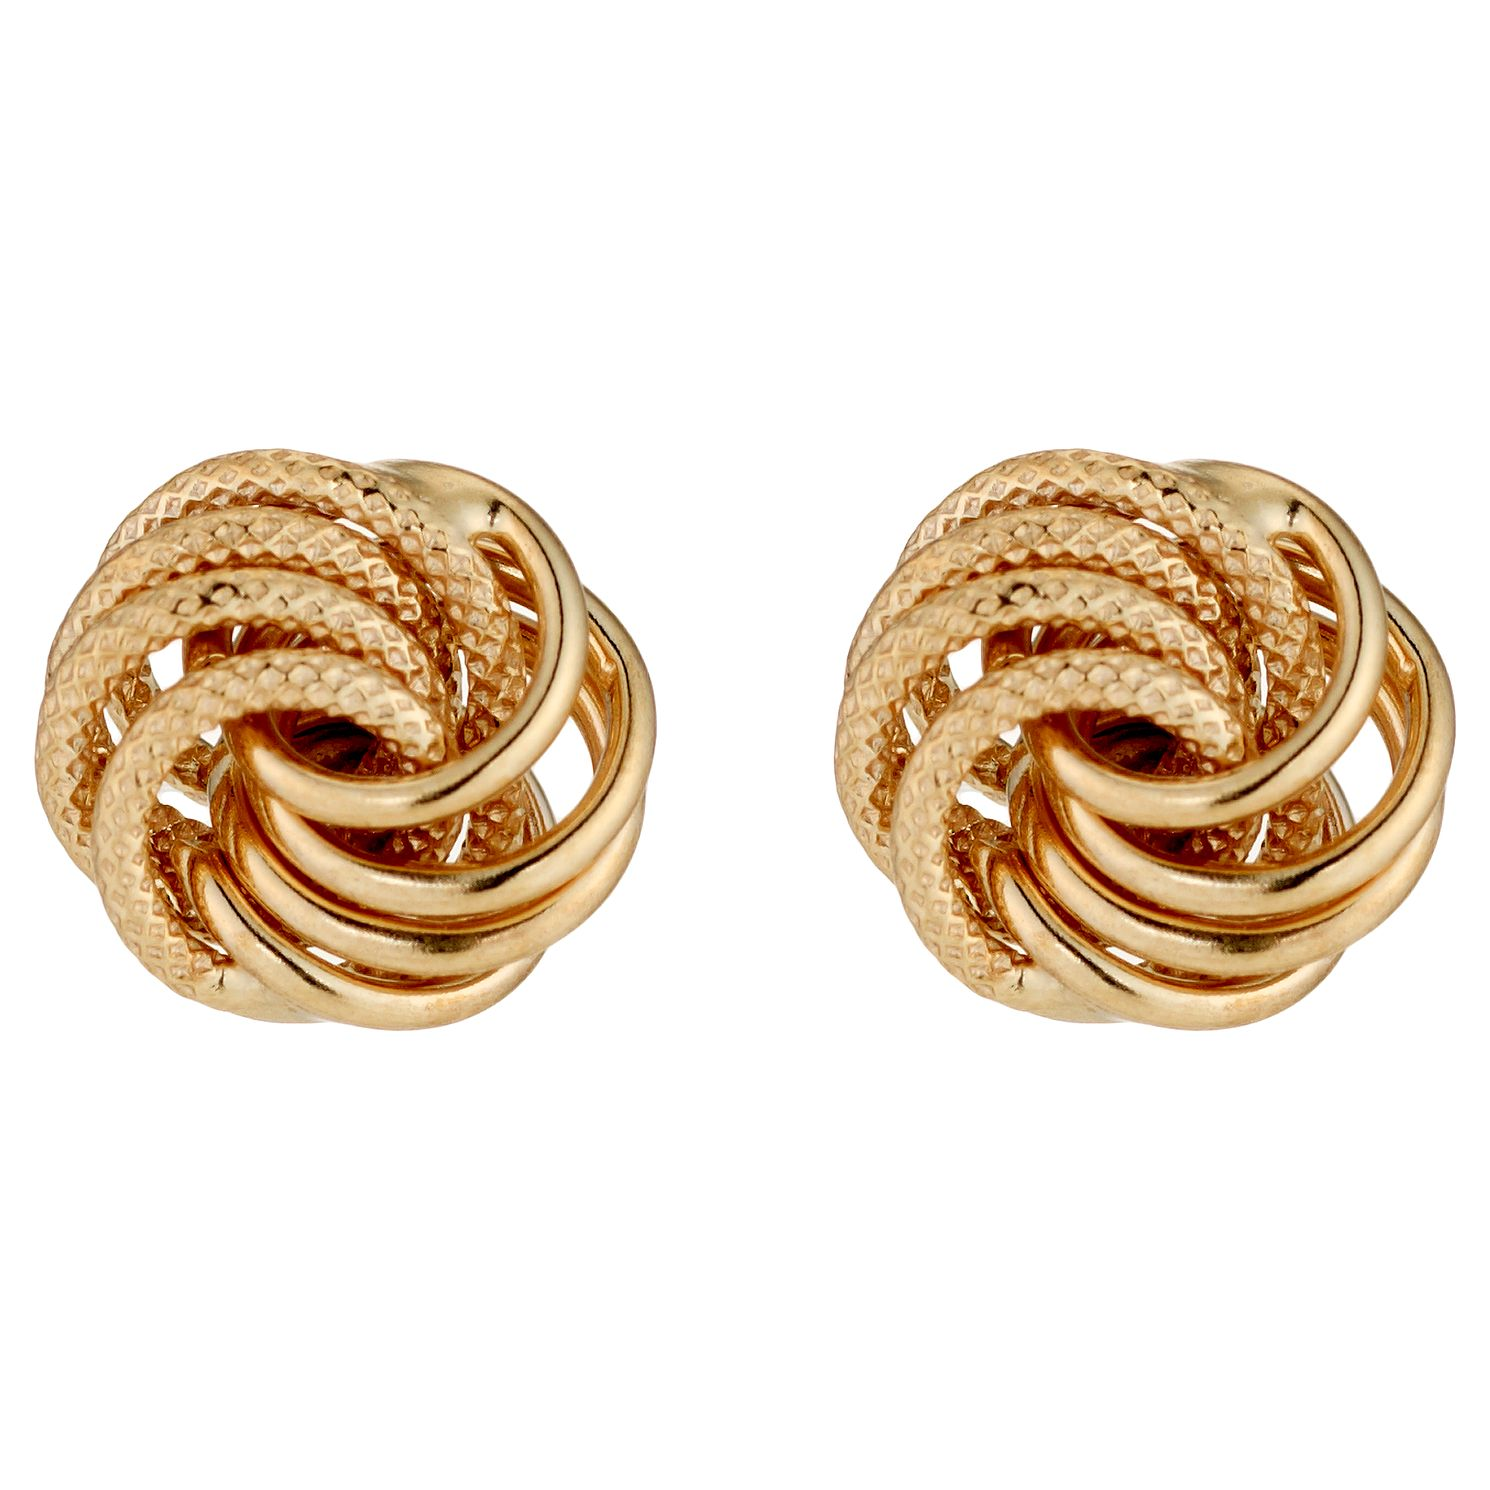 9ct Gold Small Twisted Knot Earrings - Product number 3881105